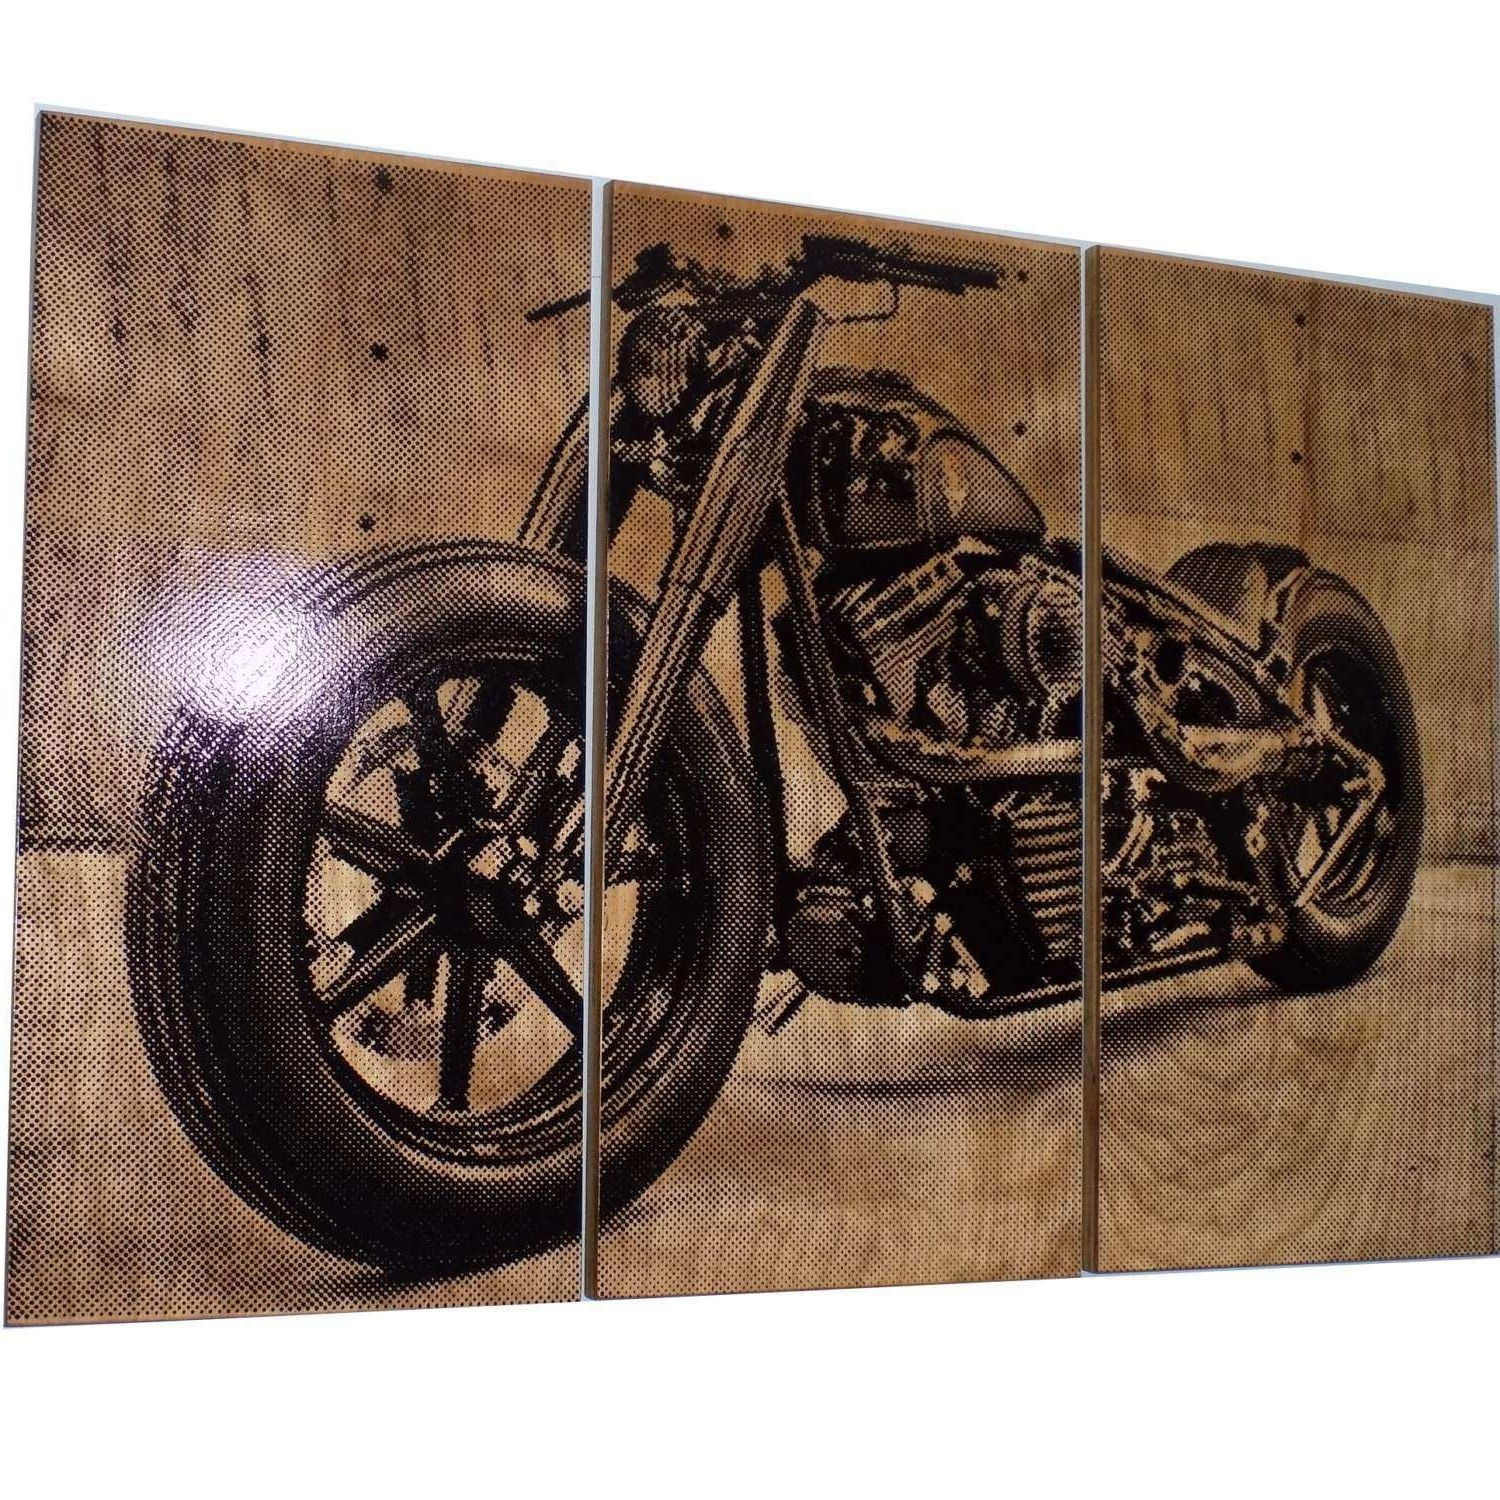 Harley Davidson Prints Wall Art Fresh Harley Davidson Fatboy Softail Within Popular Harley Davidson Wall Art (View 6 of 20)